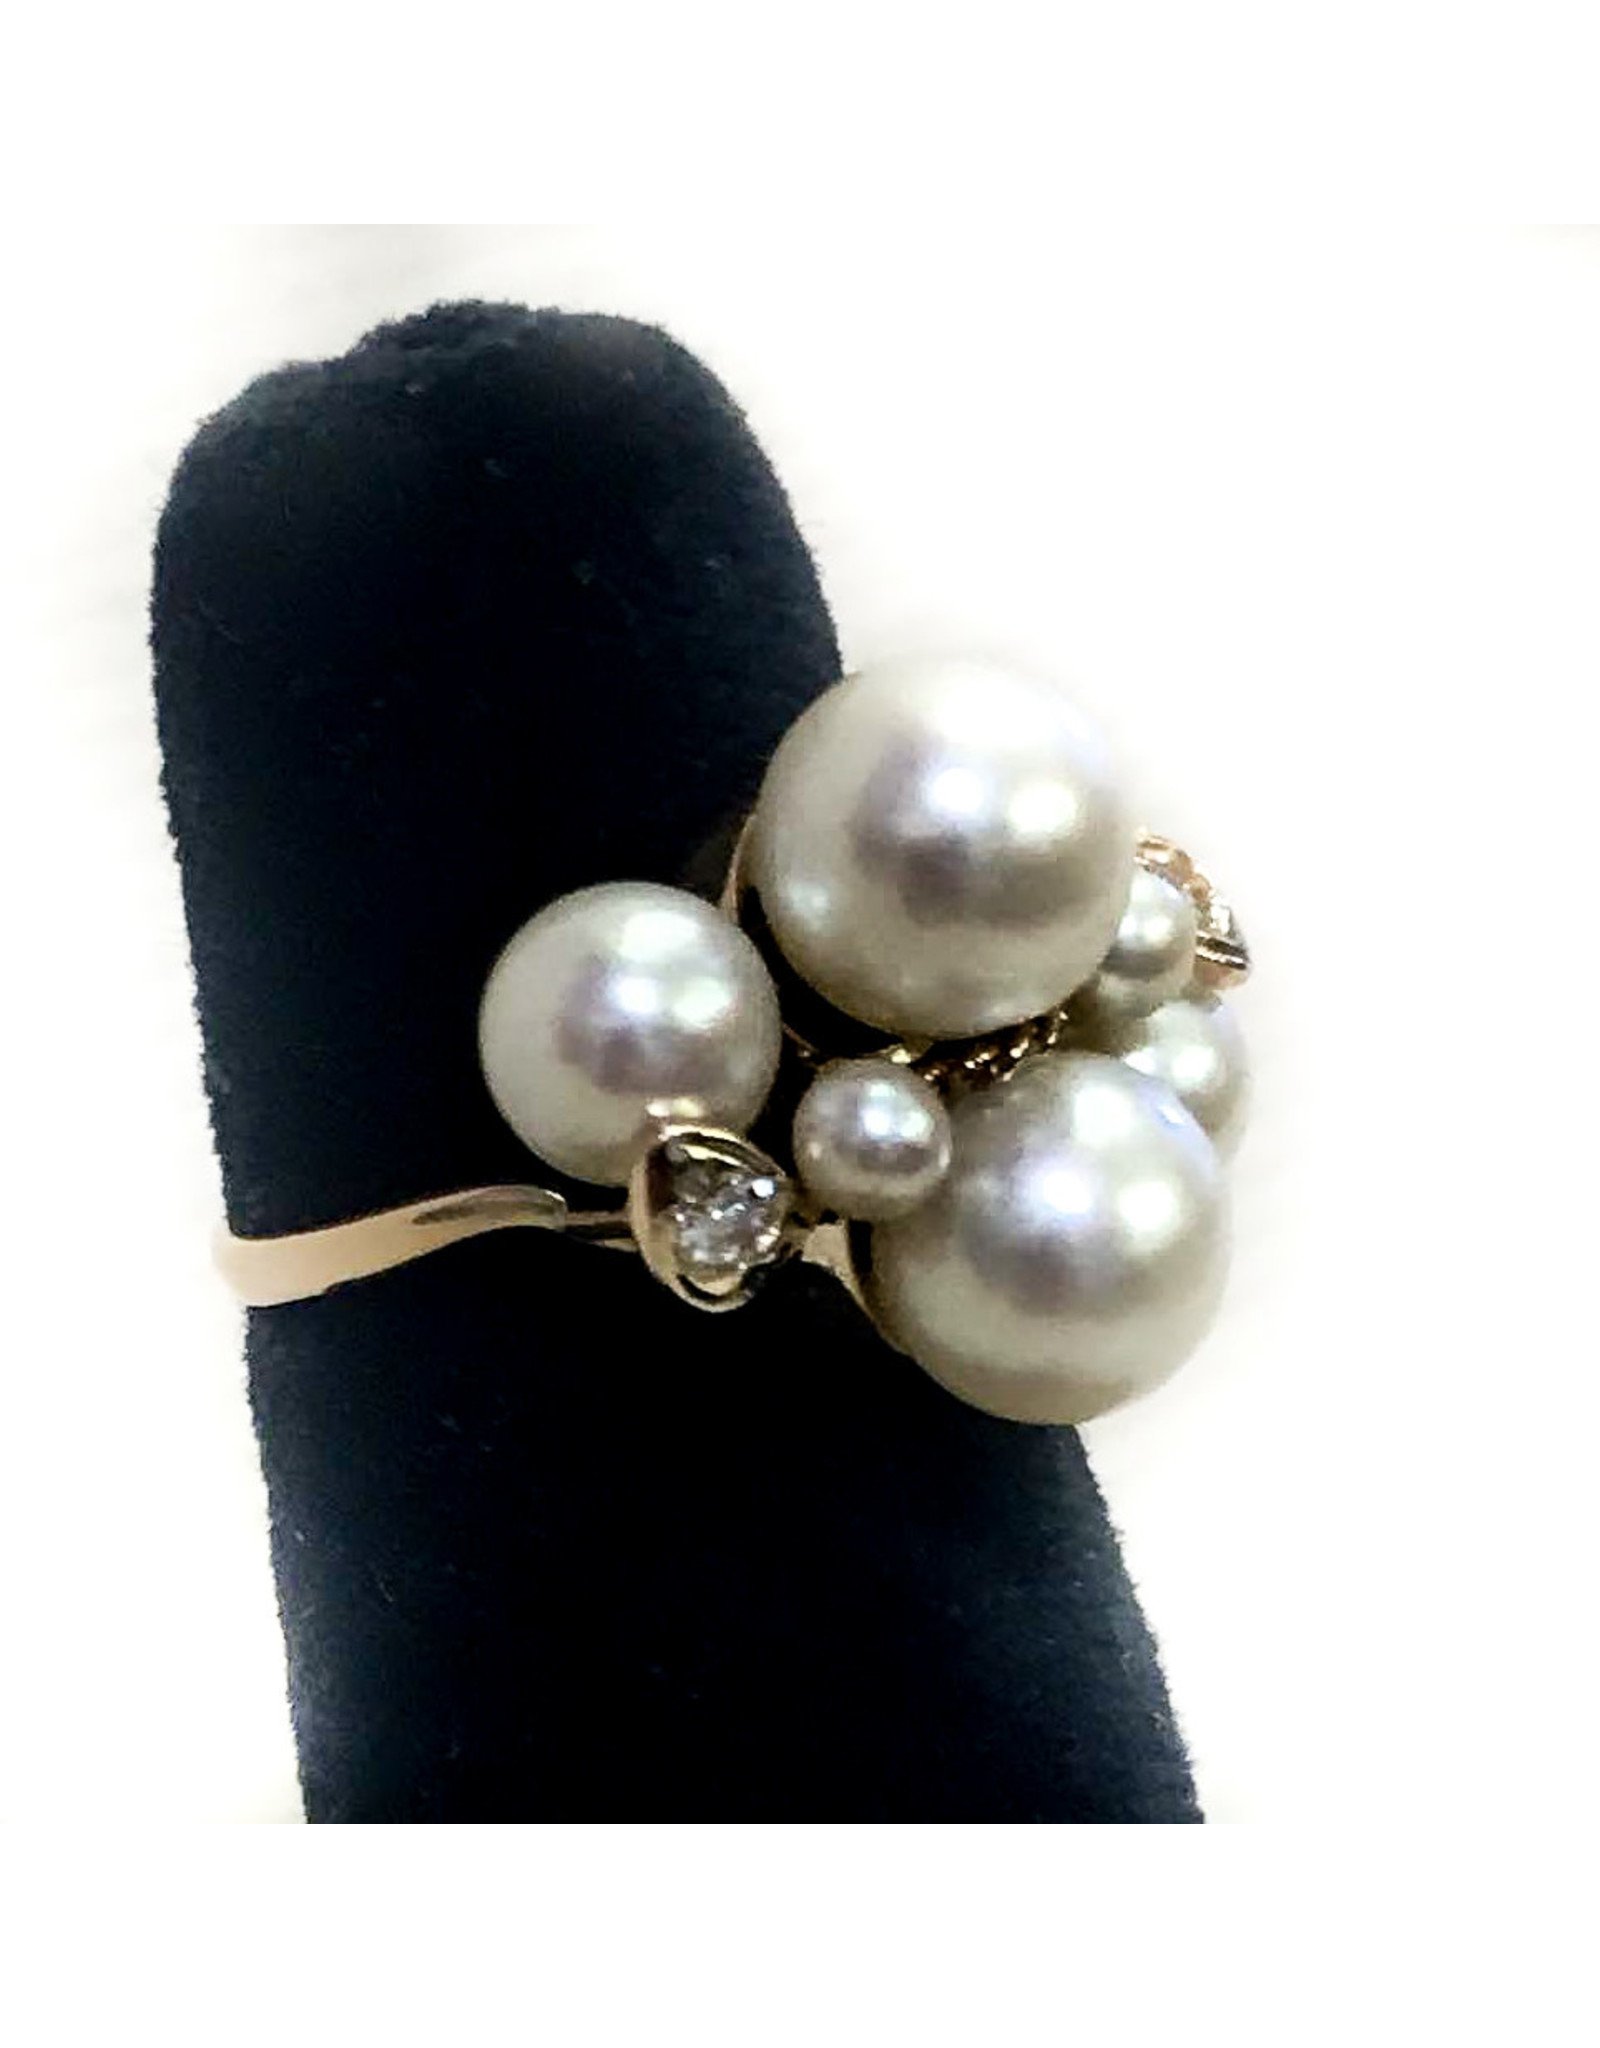 14K Gold Ring with 6 Pearls 2 Diamonds